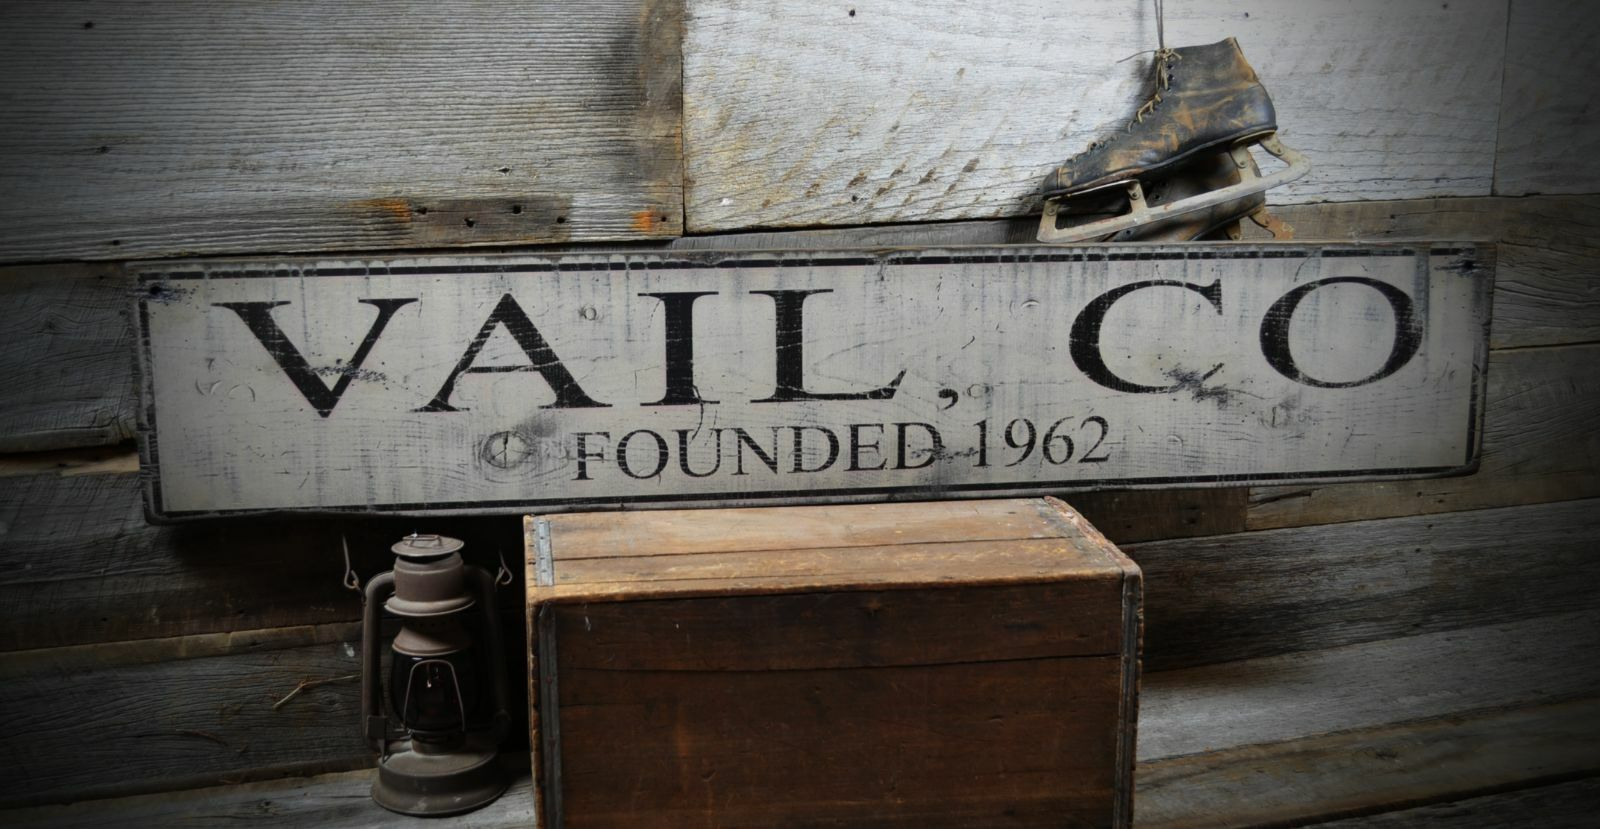 Primitive Vail Farbeado Founded Date Sign - Rustic Hand Made Wooden ENS1000254